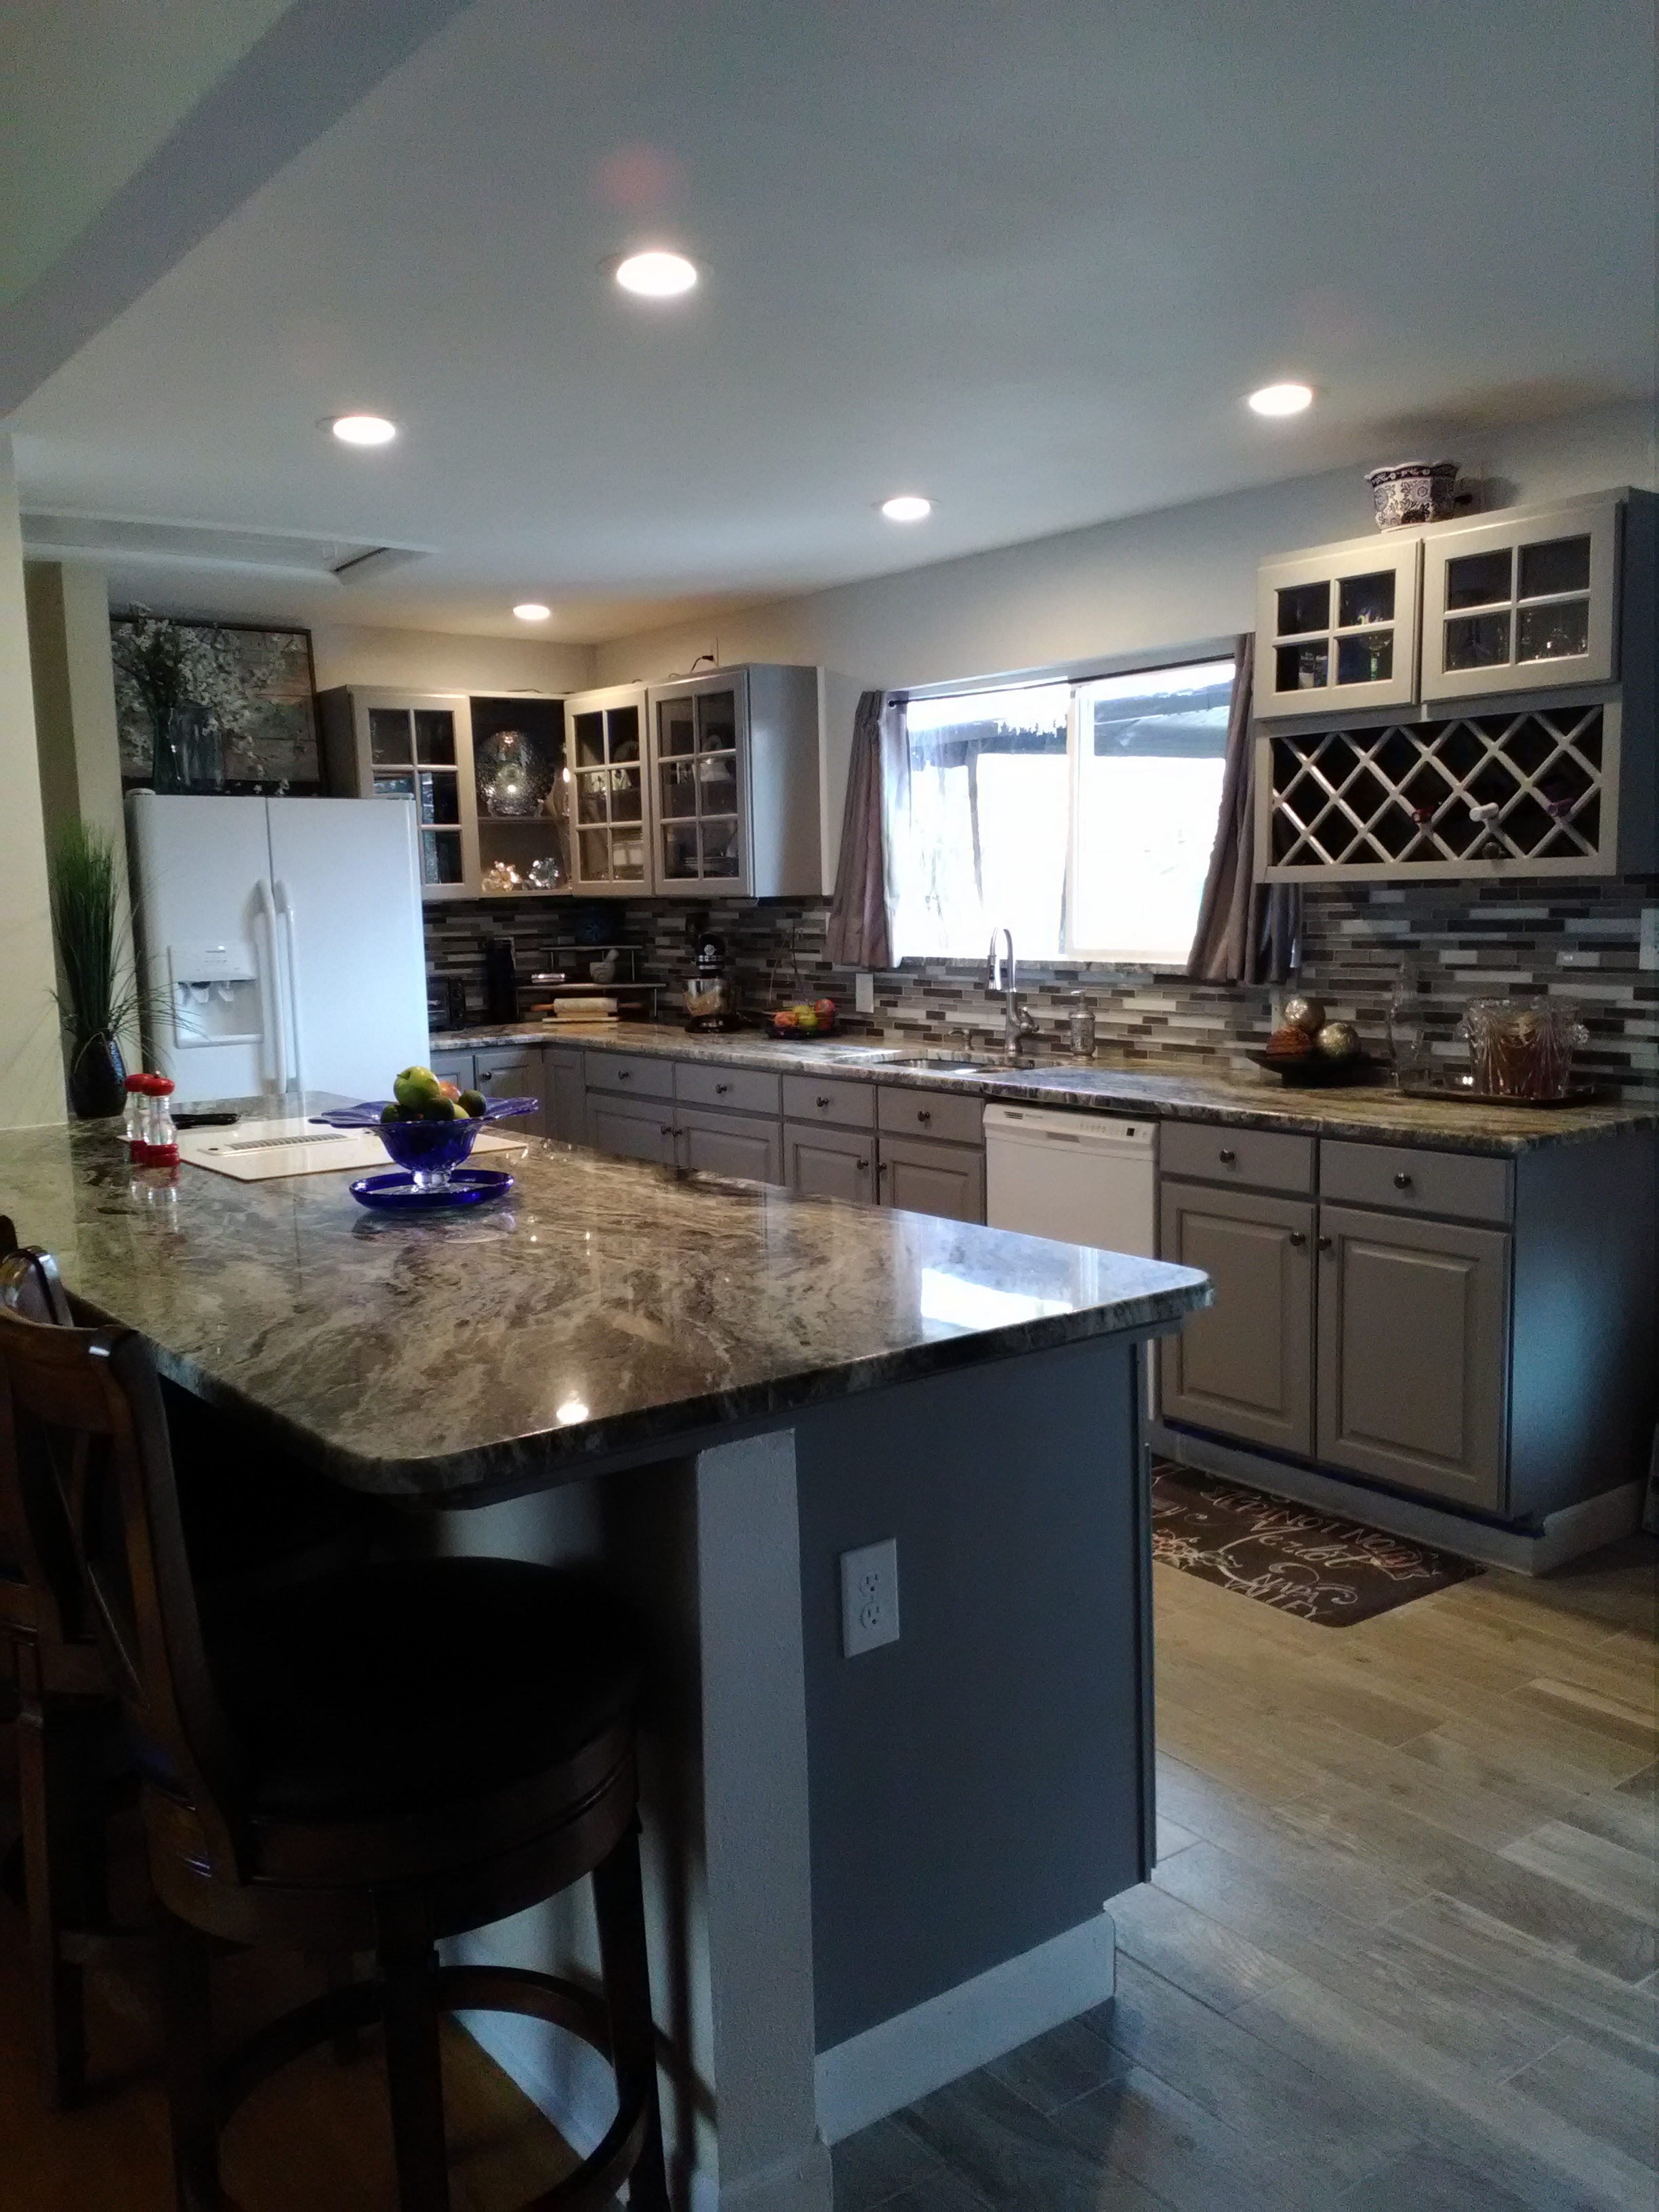 Carla In Aurora Purchased Used Kitchen Cabinets With Glass Doors Recently From Buds Warehouse Bud S Warehouse